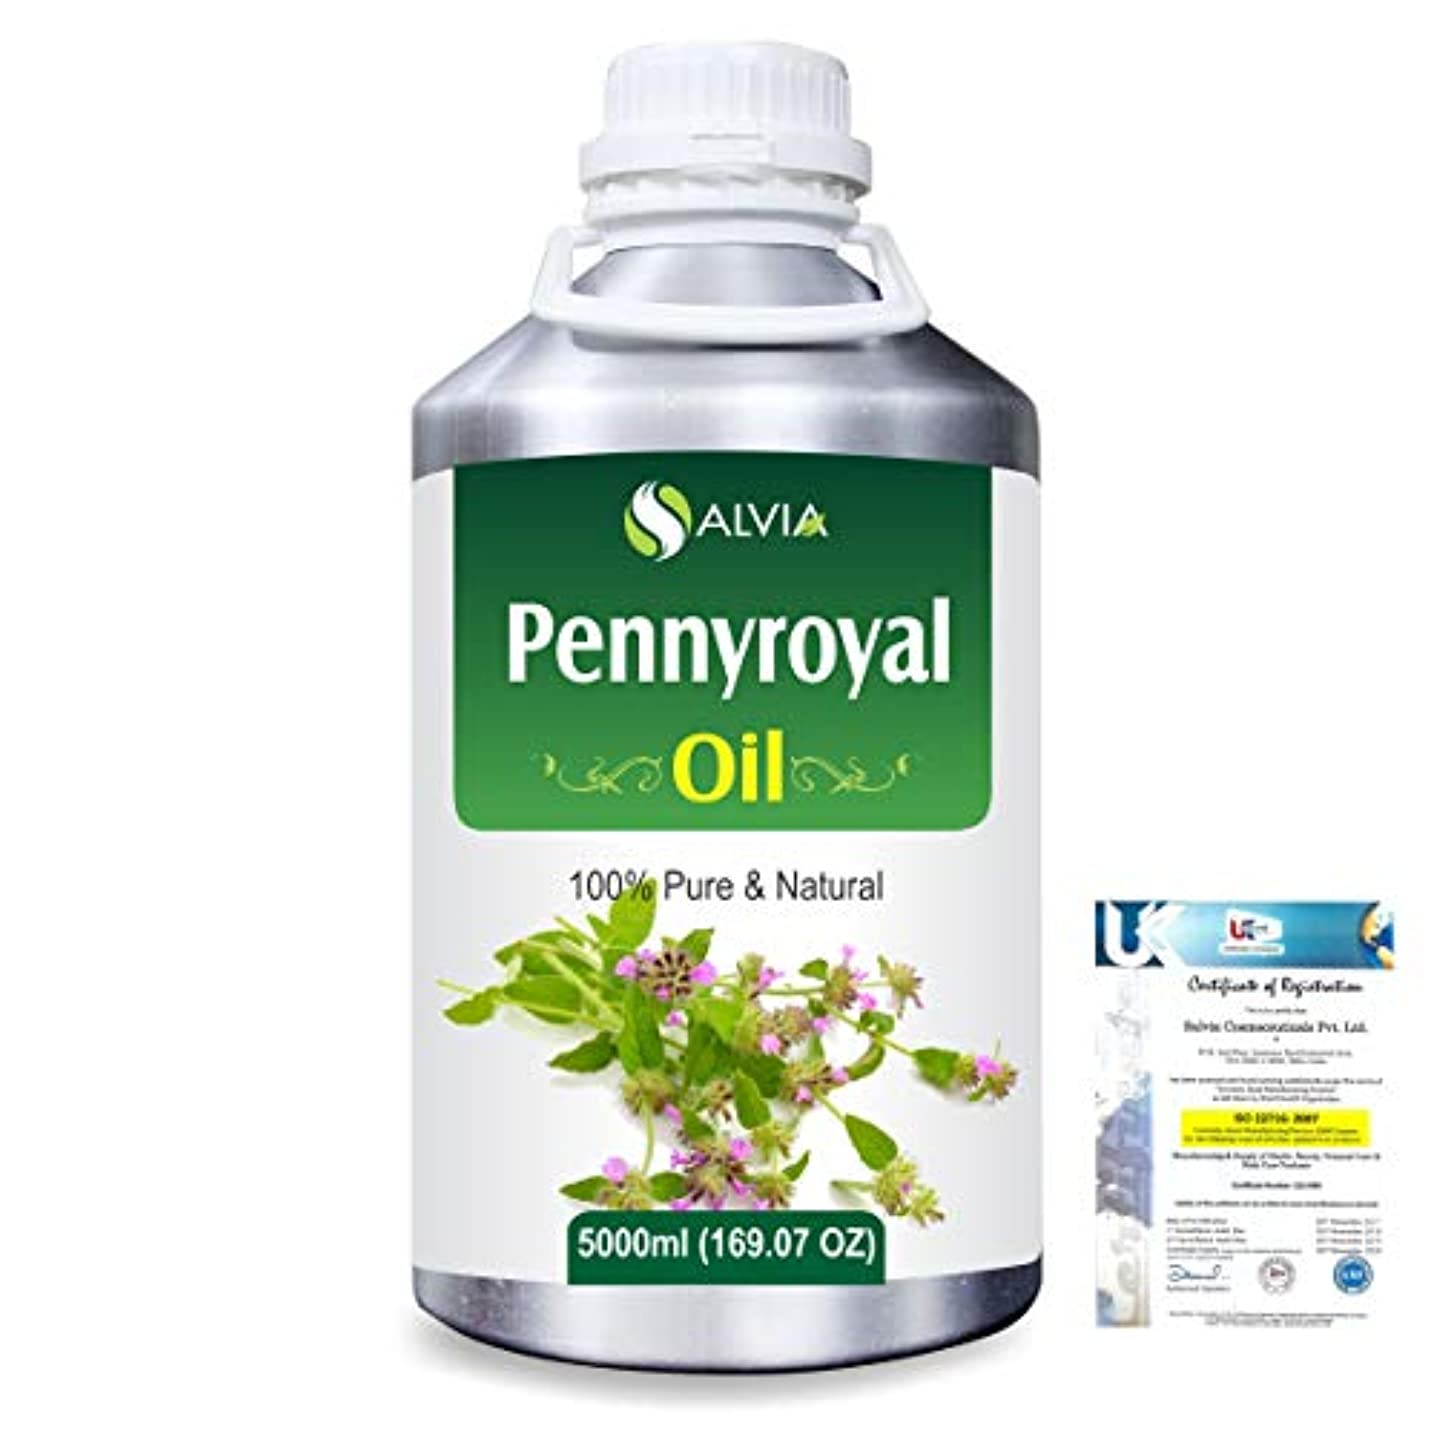 保存シュリンクそっとPennyroyal (Mentha pulegium) 100% Natural Pure Essential Oil 5000ml/169fl.oz.